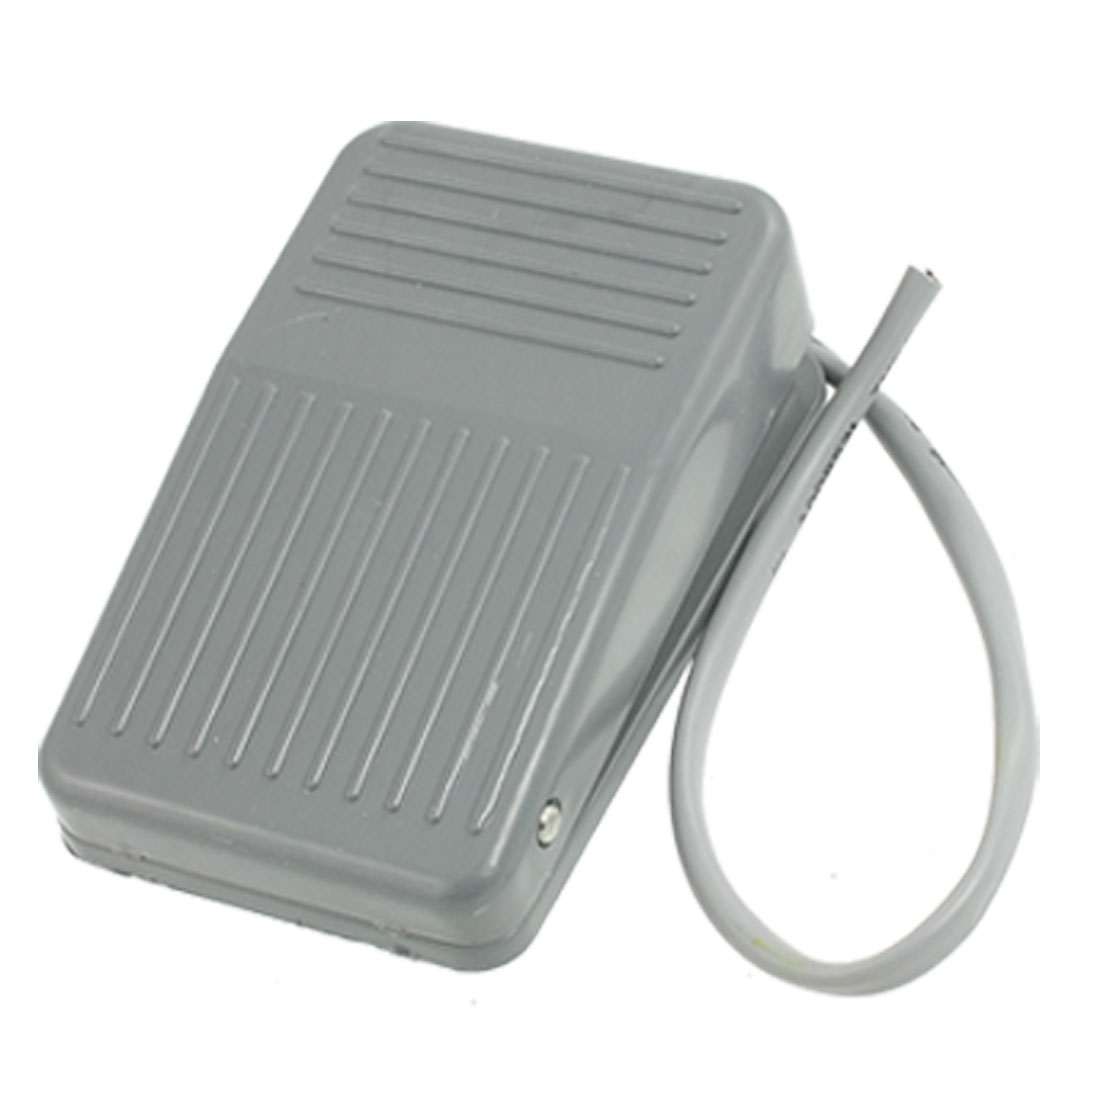 все цены на UXCELL Ac 250V 10A Spdt No Nc Antislip Plastic Momentary Elextric Power Foot Pedal Switch Gray онлайн